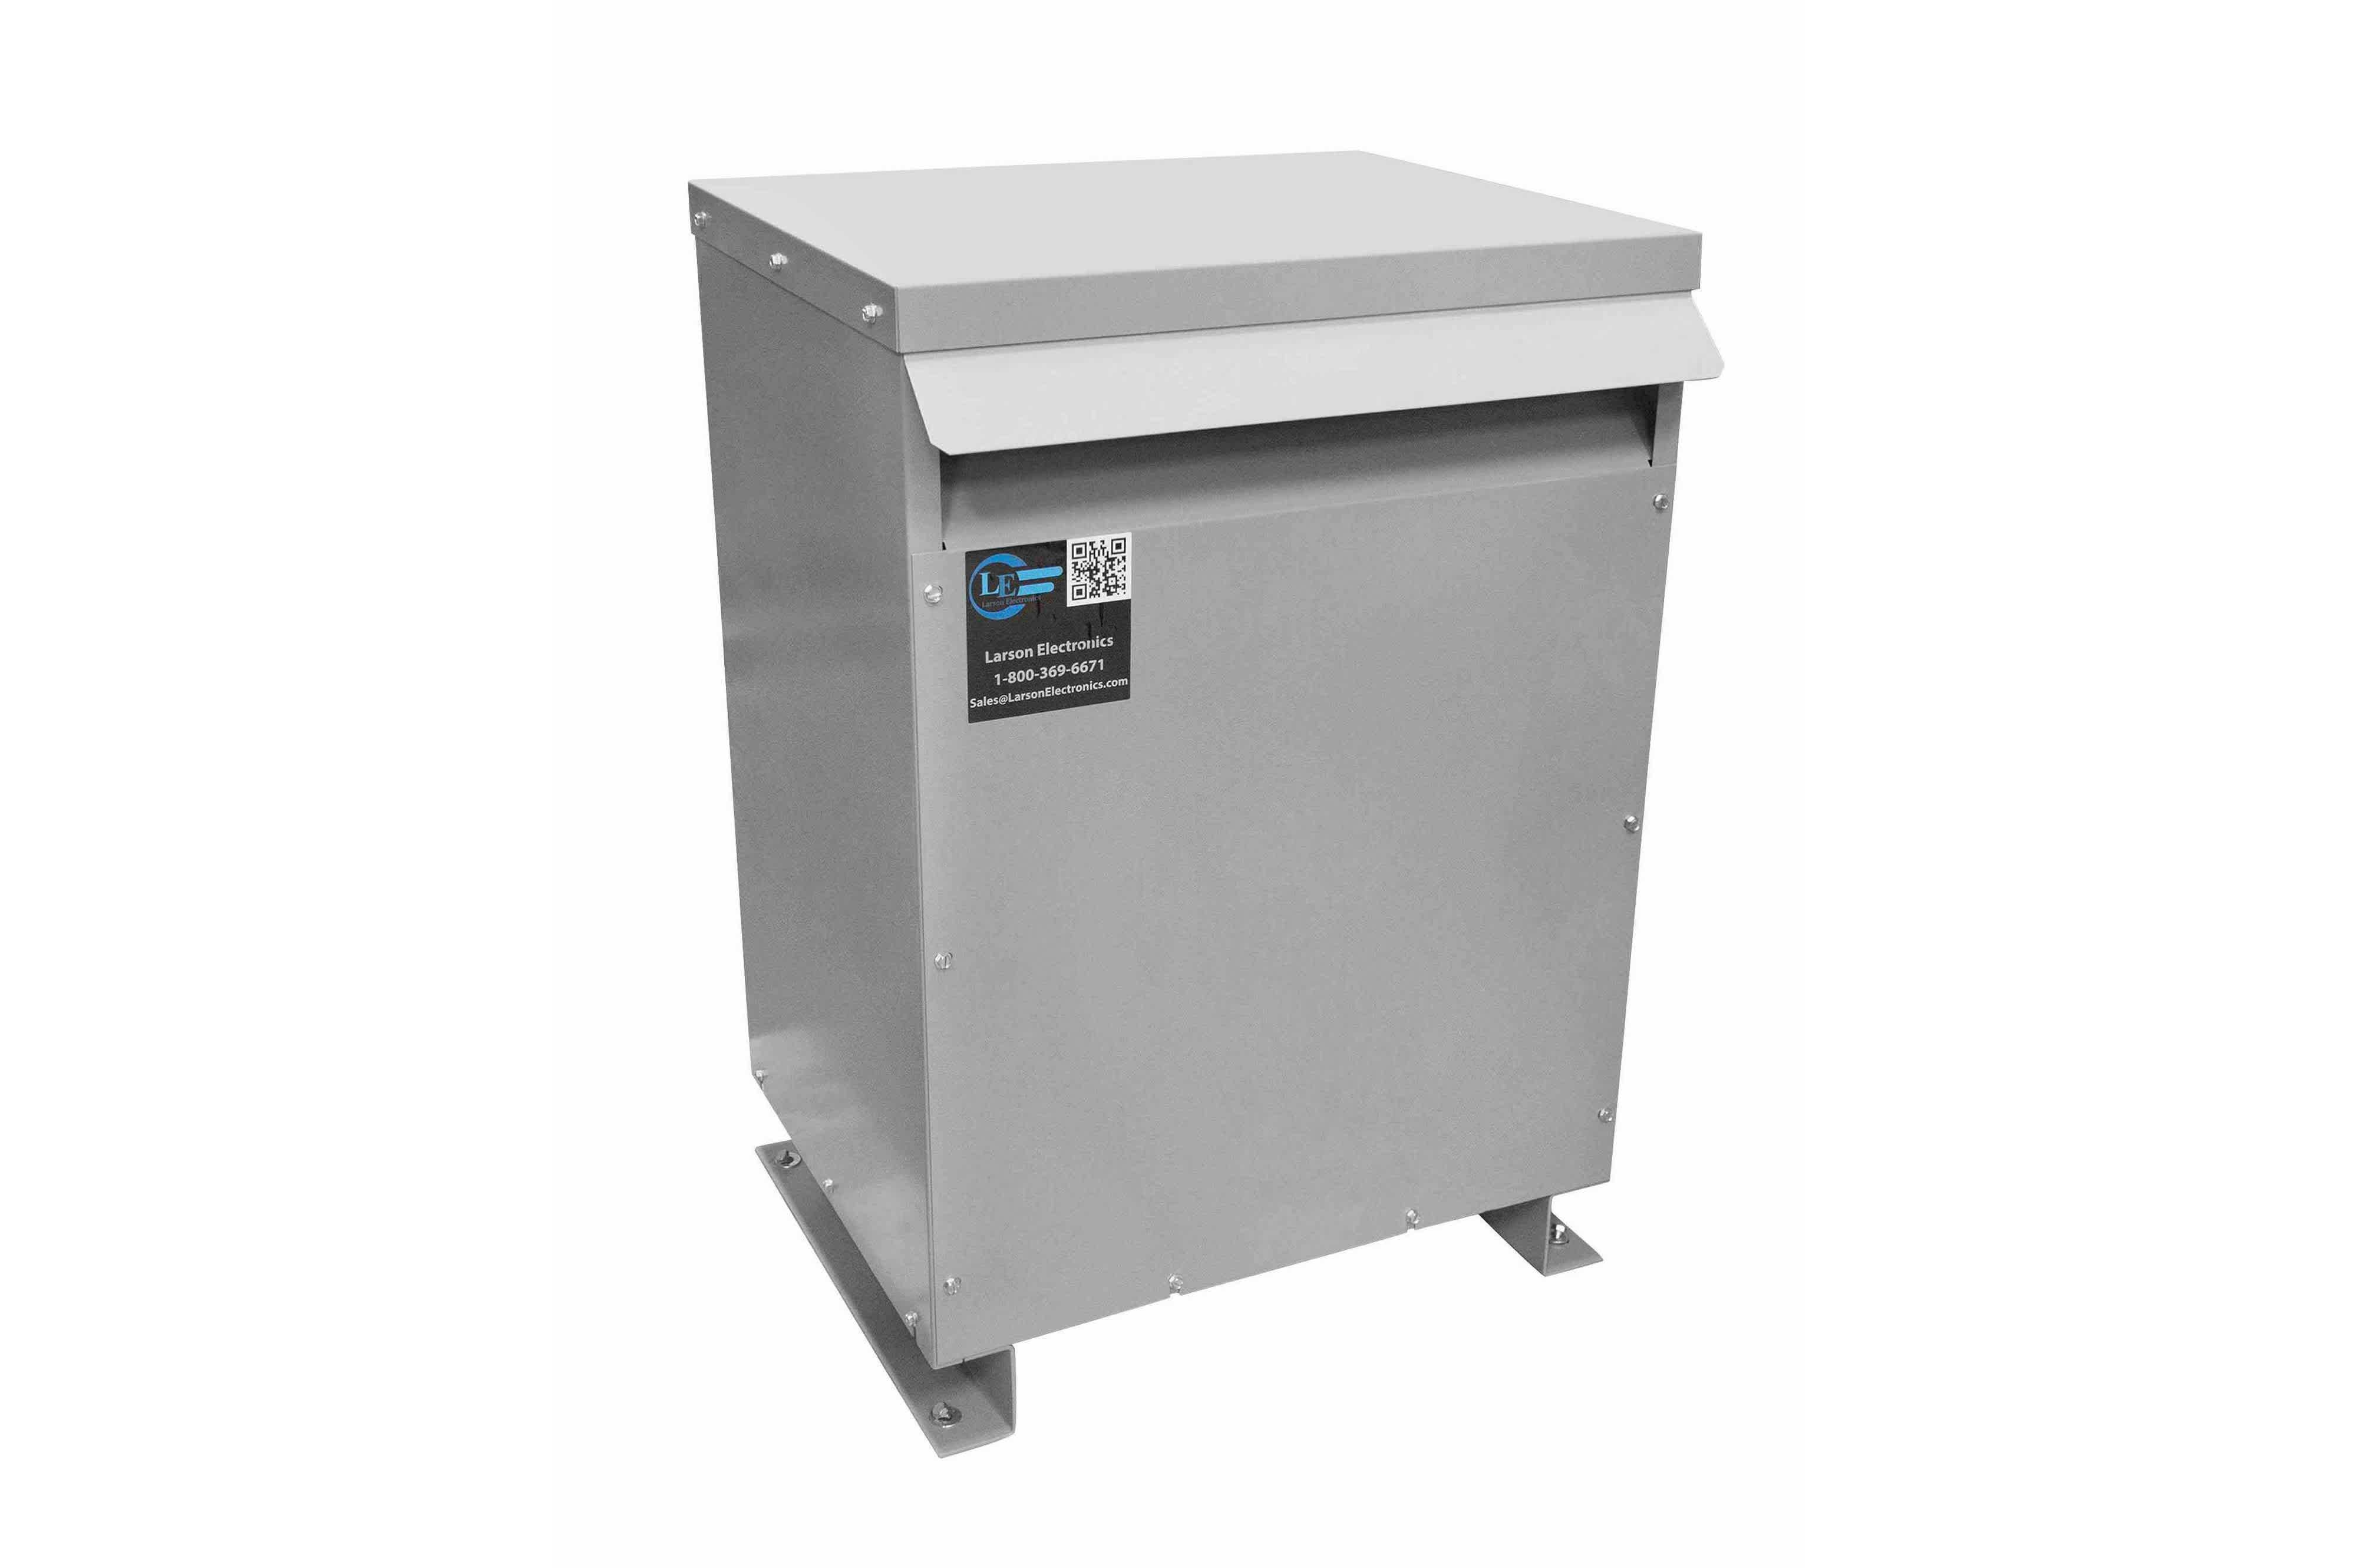 52.5 kVA 3PH Isolation Transformer, 380V Wye Primary, 208V Delta Secondary, N3R, Ventilated, 60 Hz